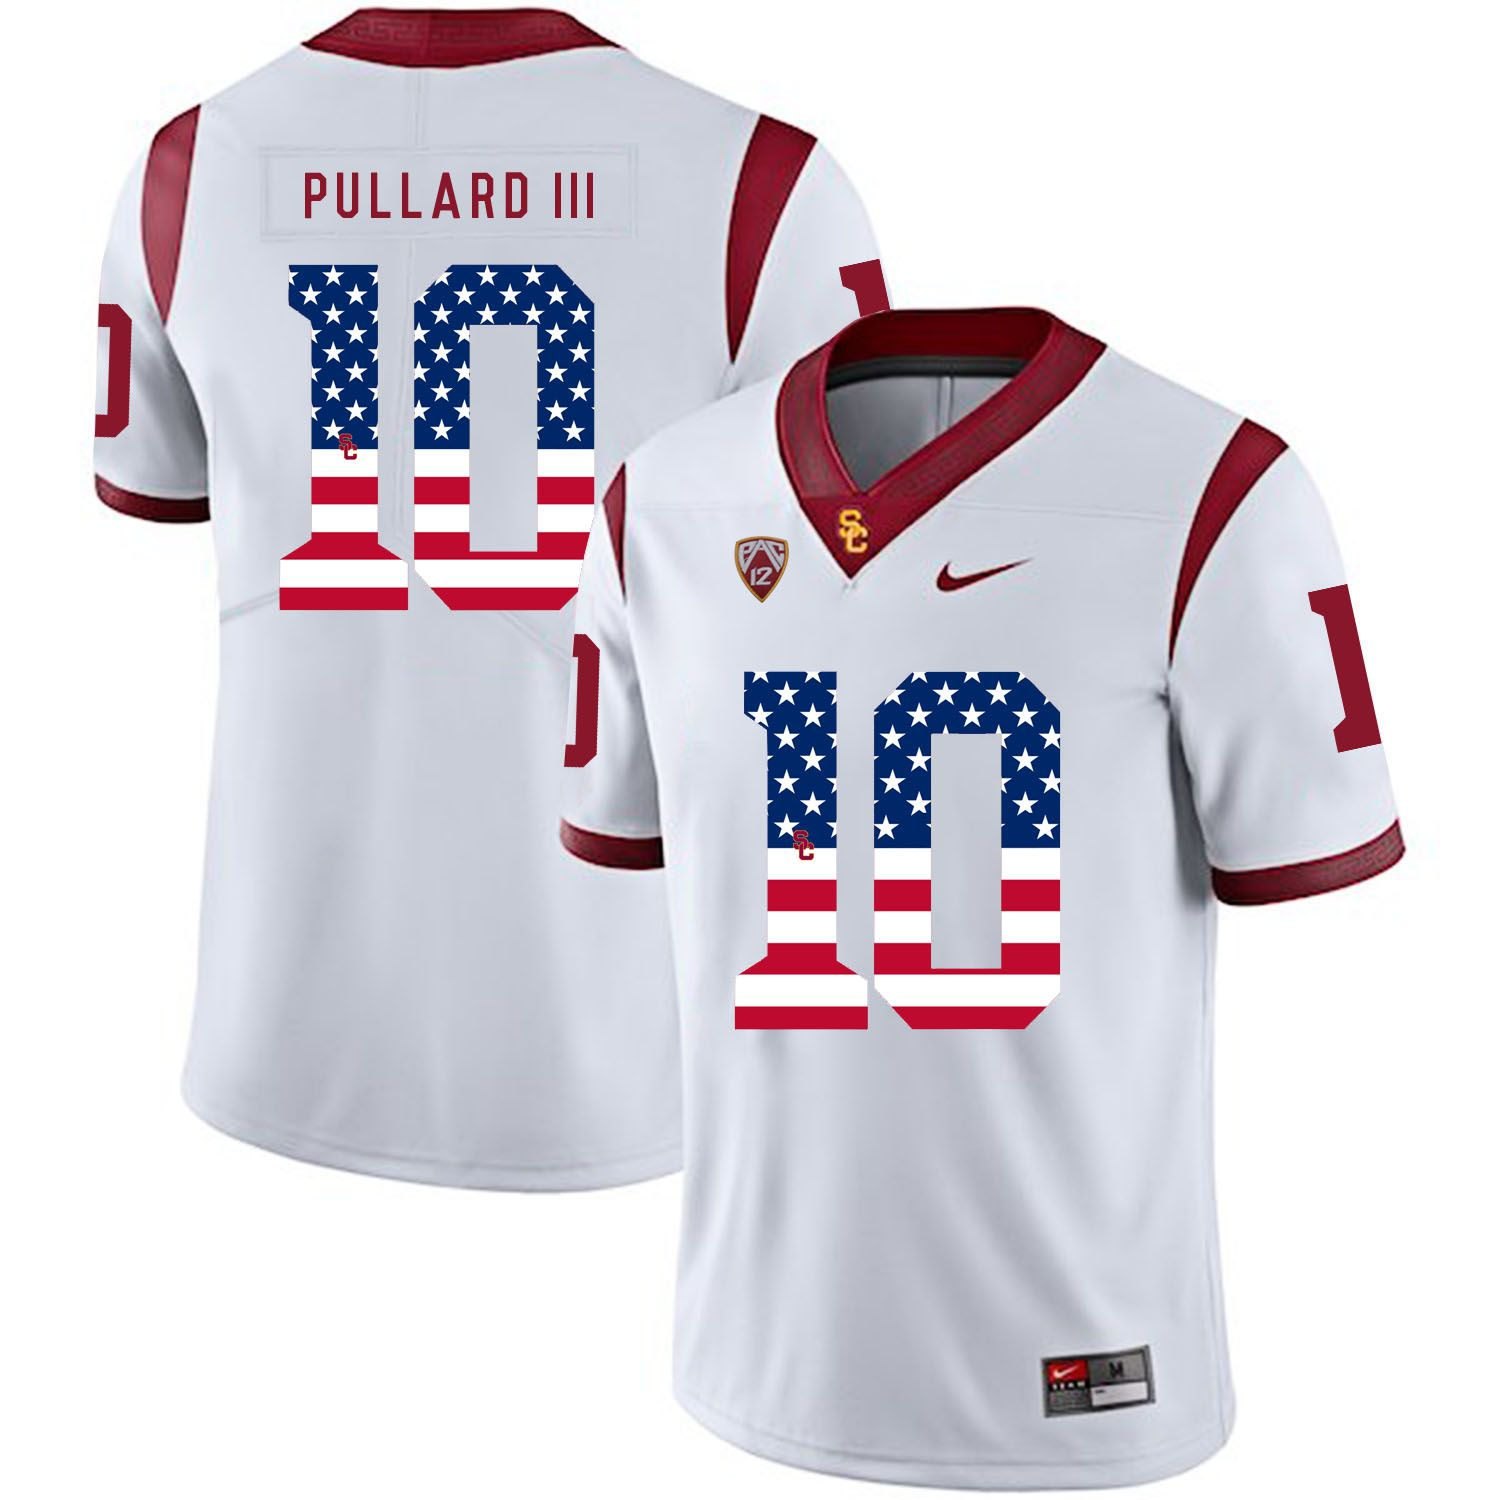 Men USC Trojans 10 Pullard iii White Flag Customized NCAA Jerseys